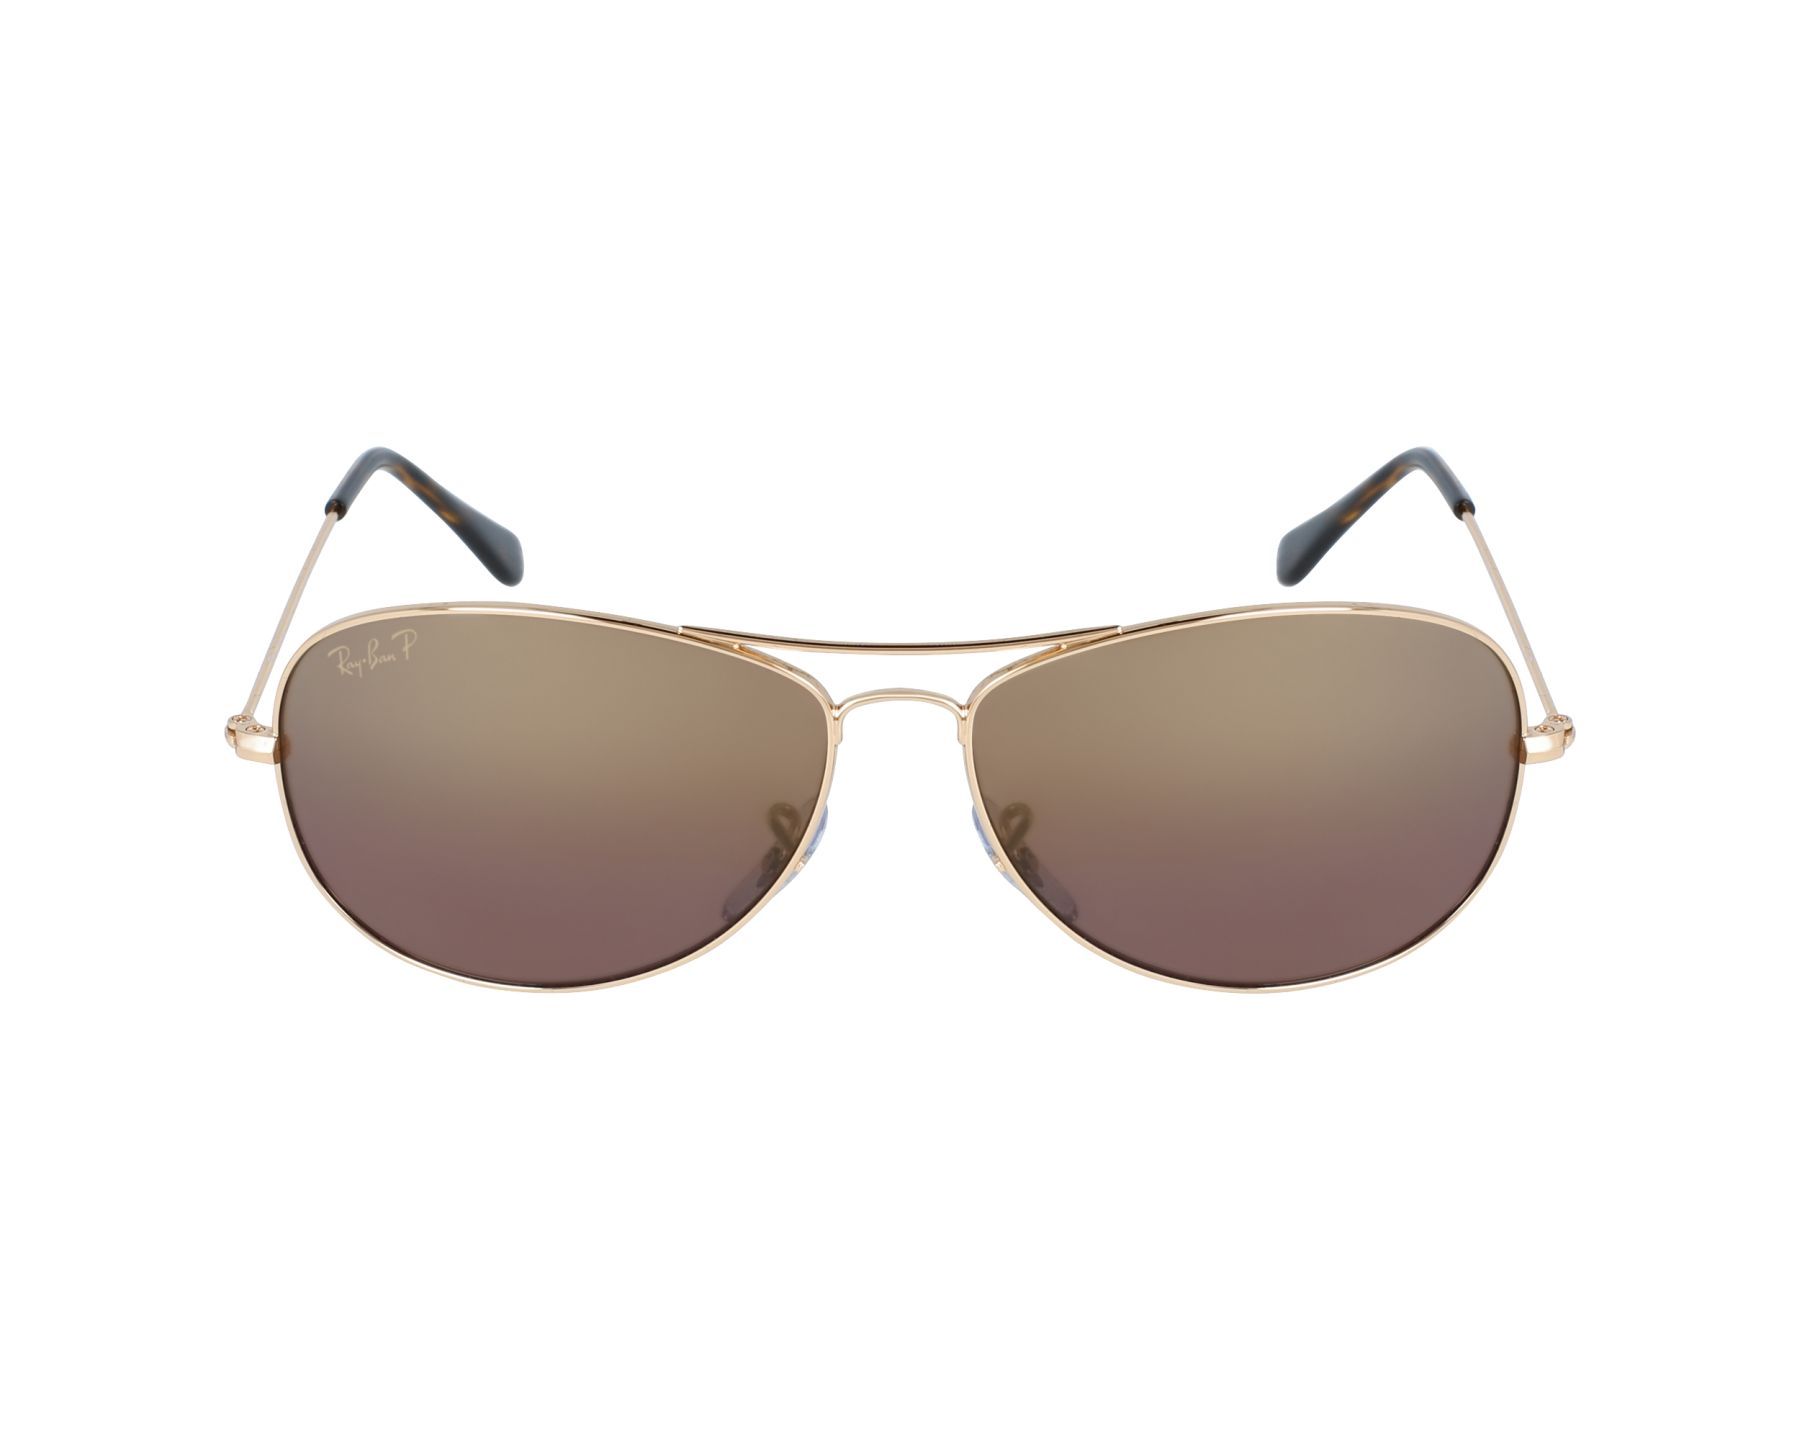 0ed36a5252 Sunglasses Ray-Ban RB-3562 001 6B 59-14 Gold profile view